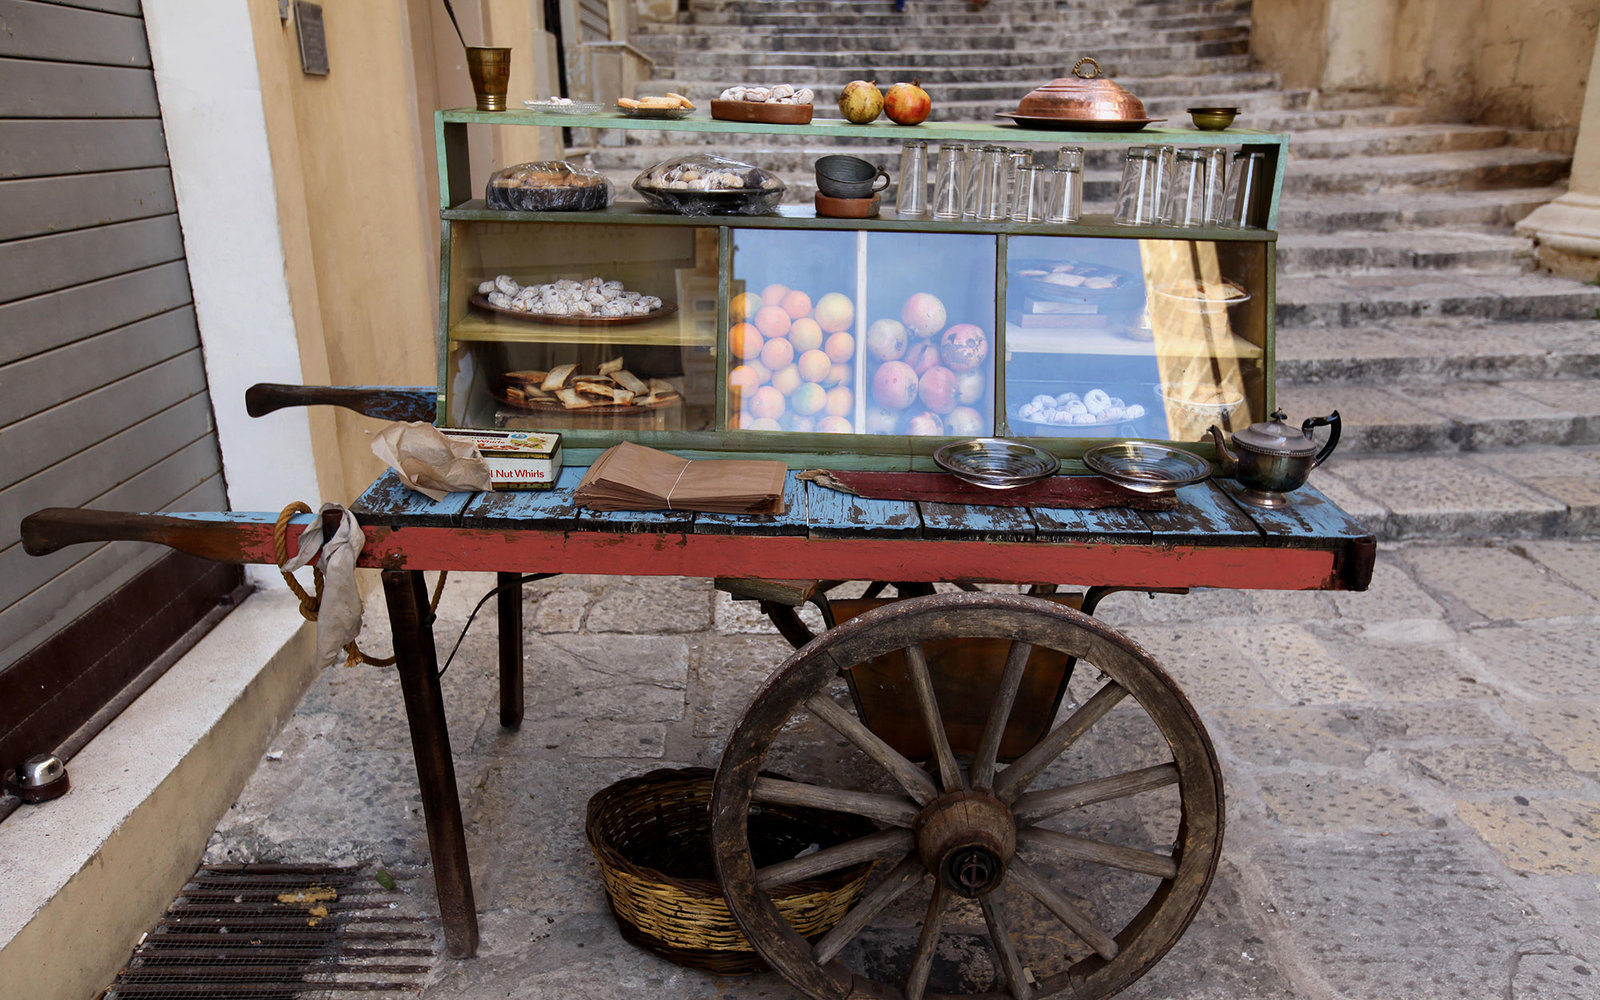 F51F5H A Maltese street Vendor's cart in Valletta selling food